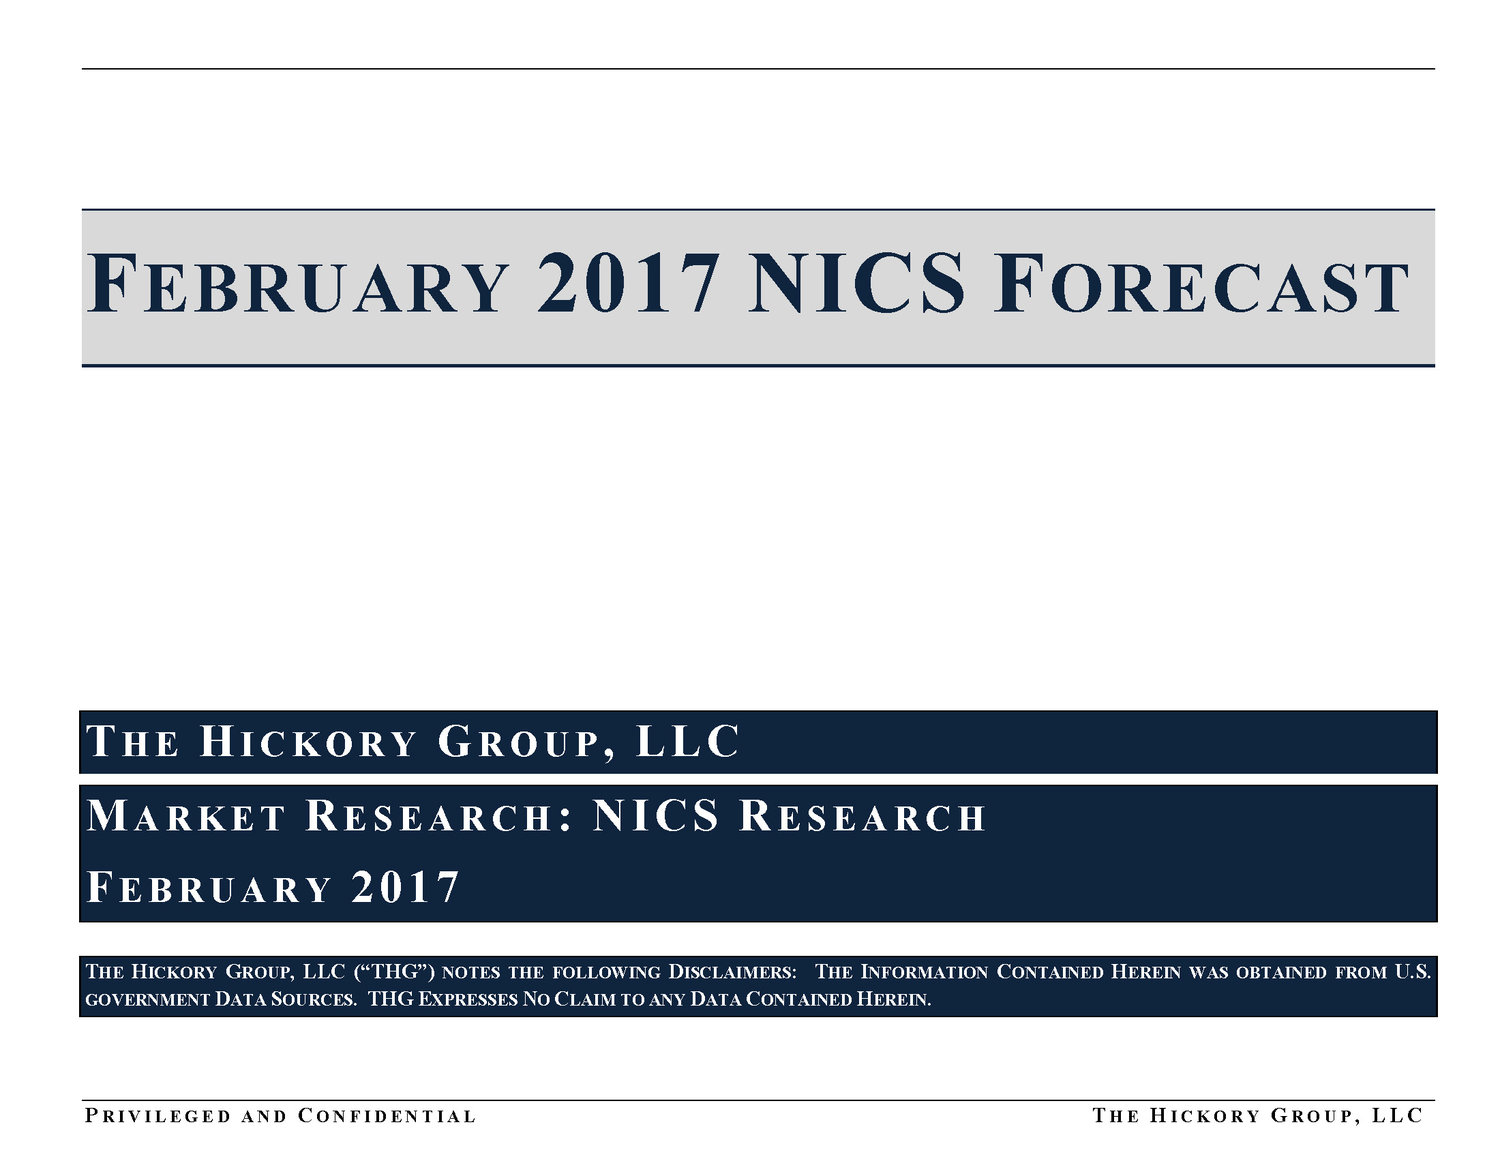 NICS+Checks+February+Forecast+FINAL+(27+February+2017)+Privileged+and+Confidential_Page_1.jpg